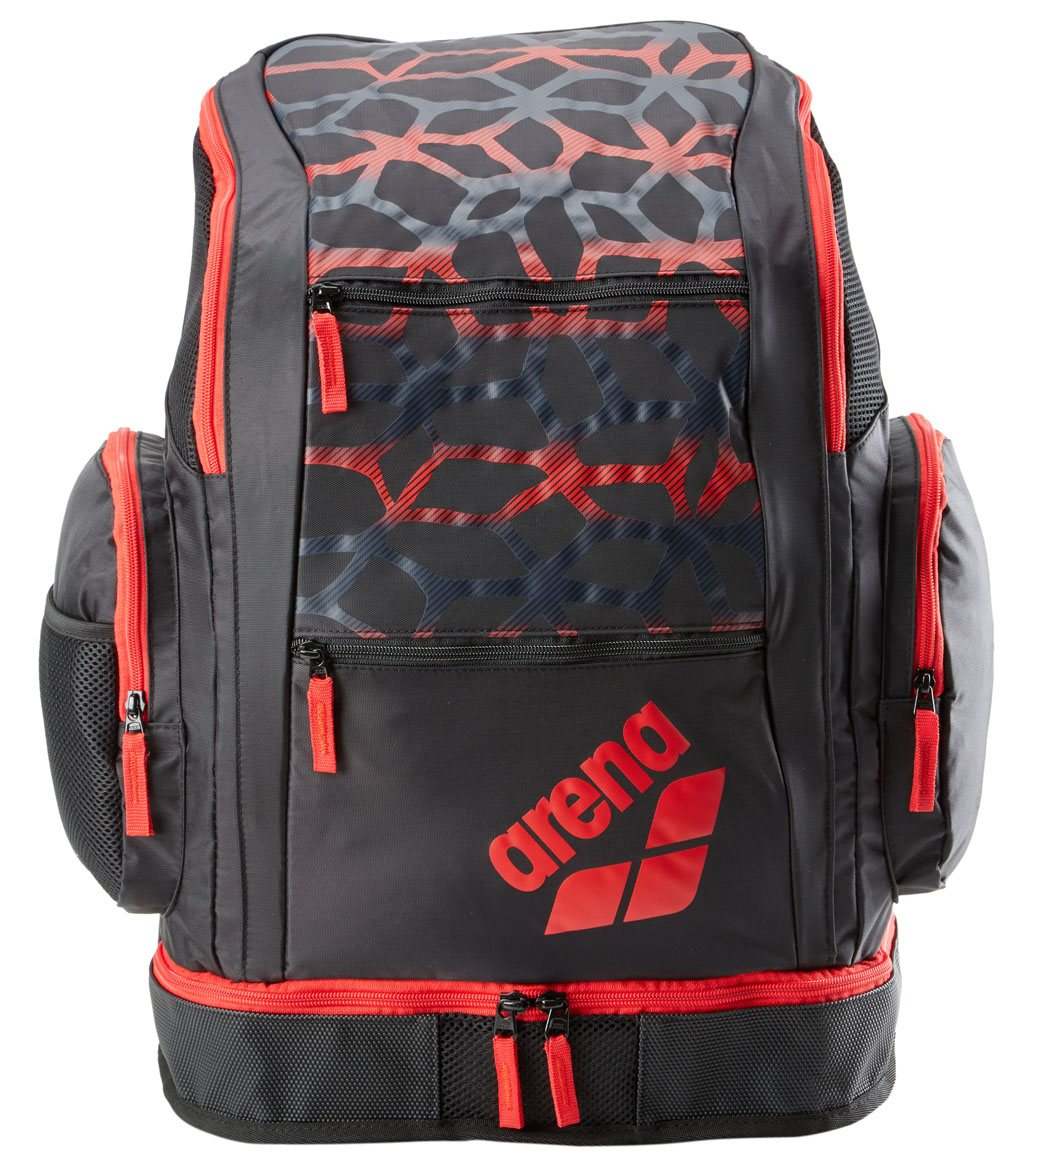 629a51ba60a Arena Printed Spiky 2 Spider Large Backpack at SwimOutlet.com ...